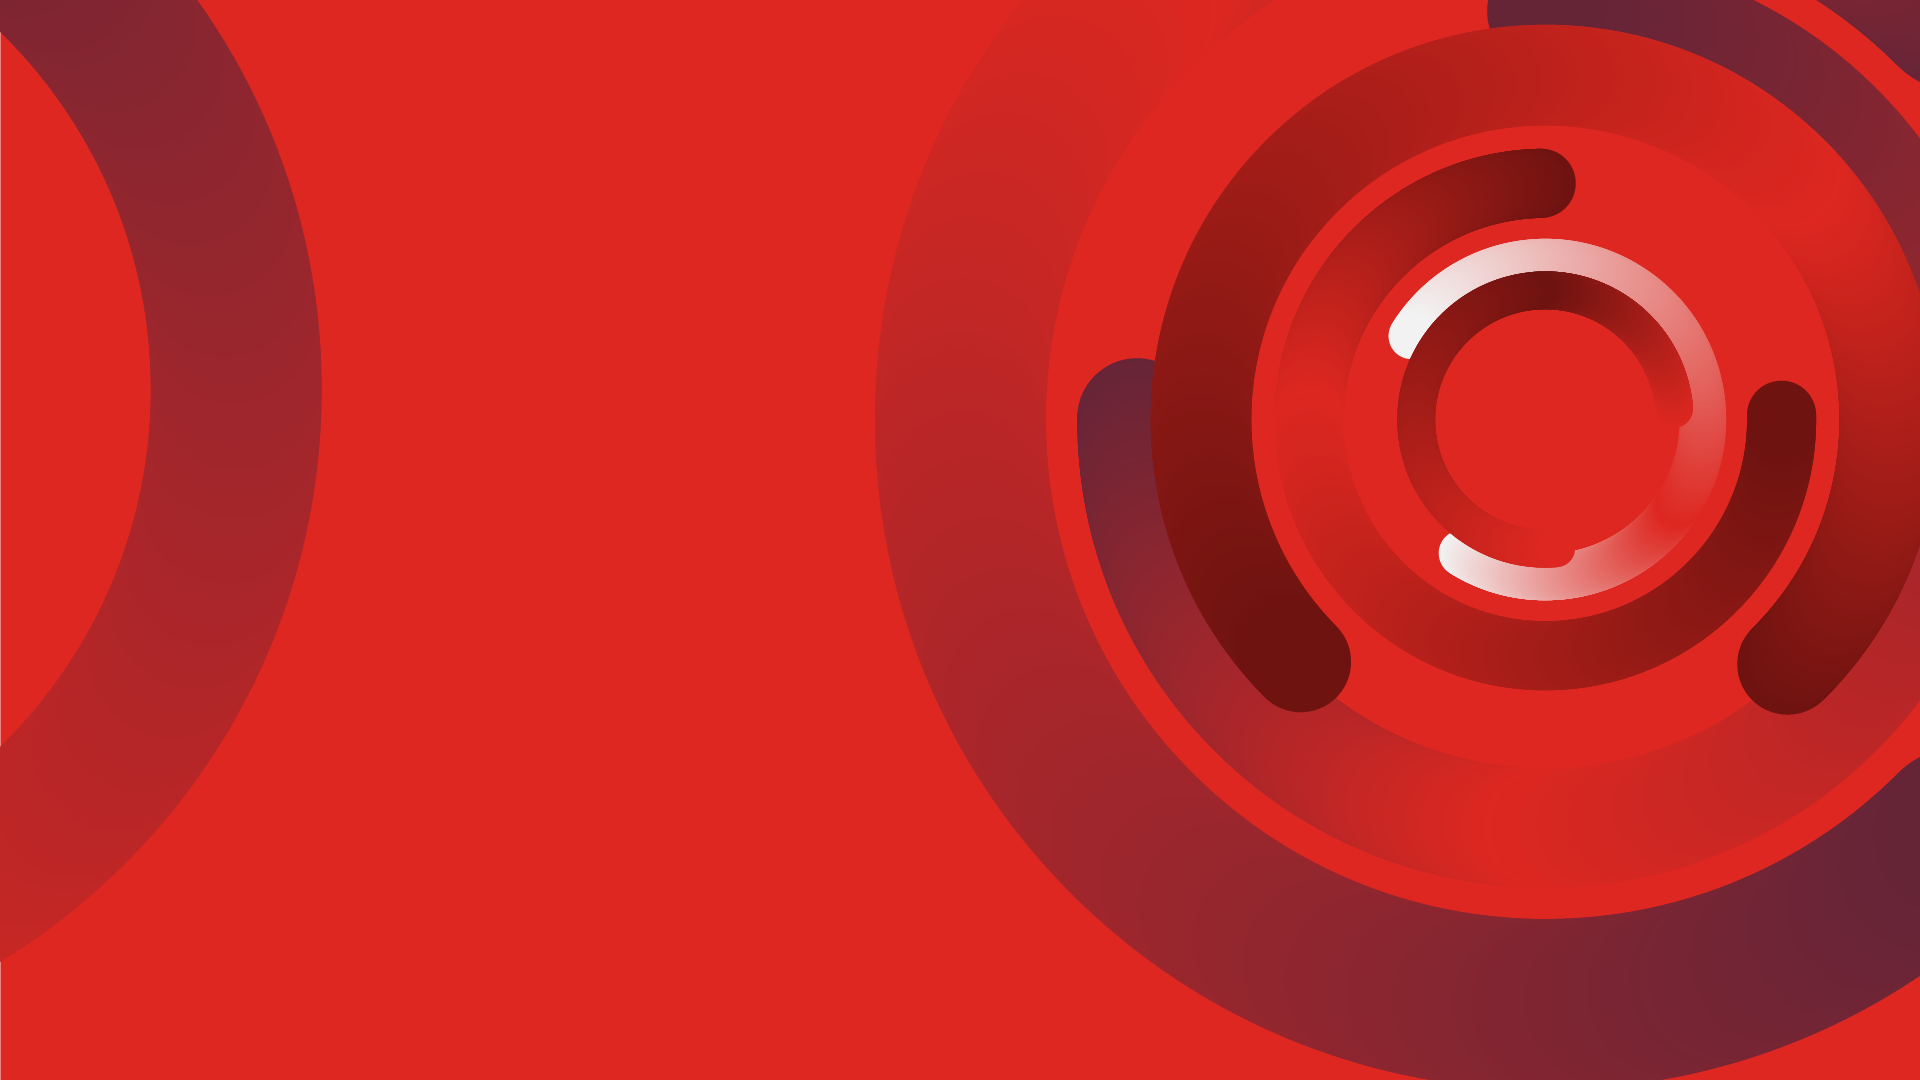 m and a outlook red circle background